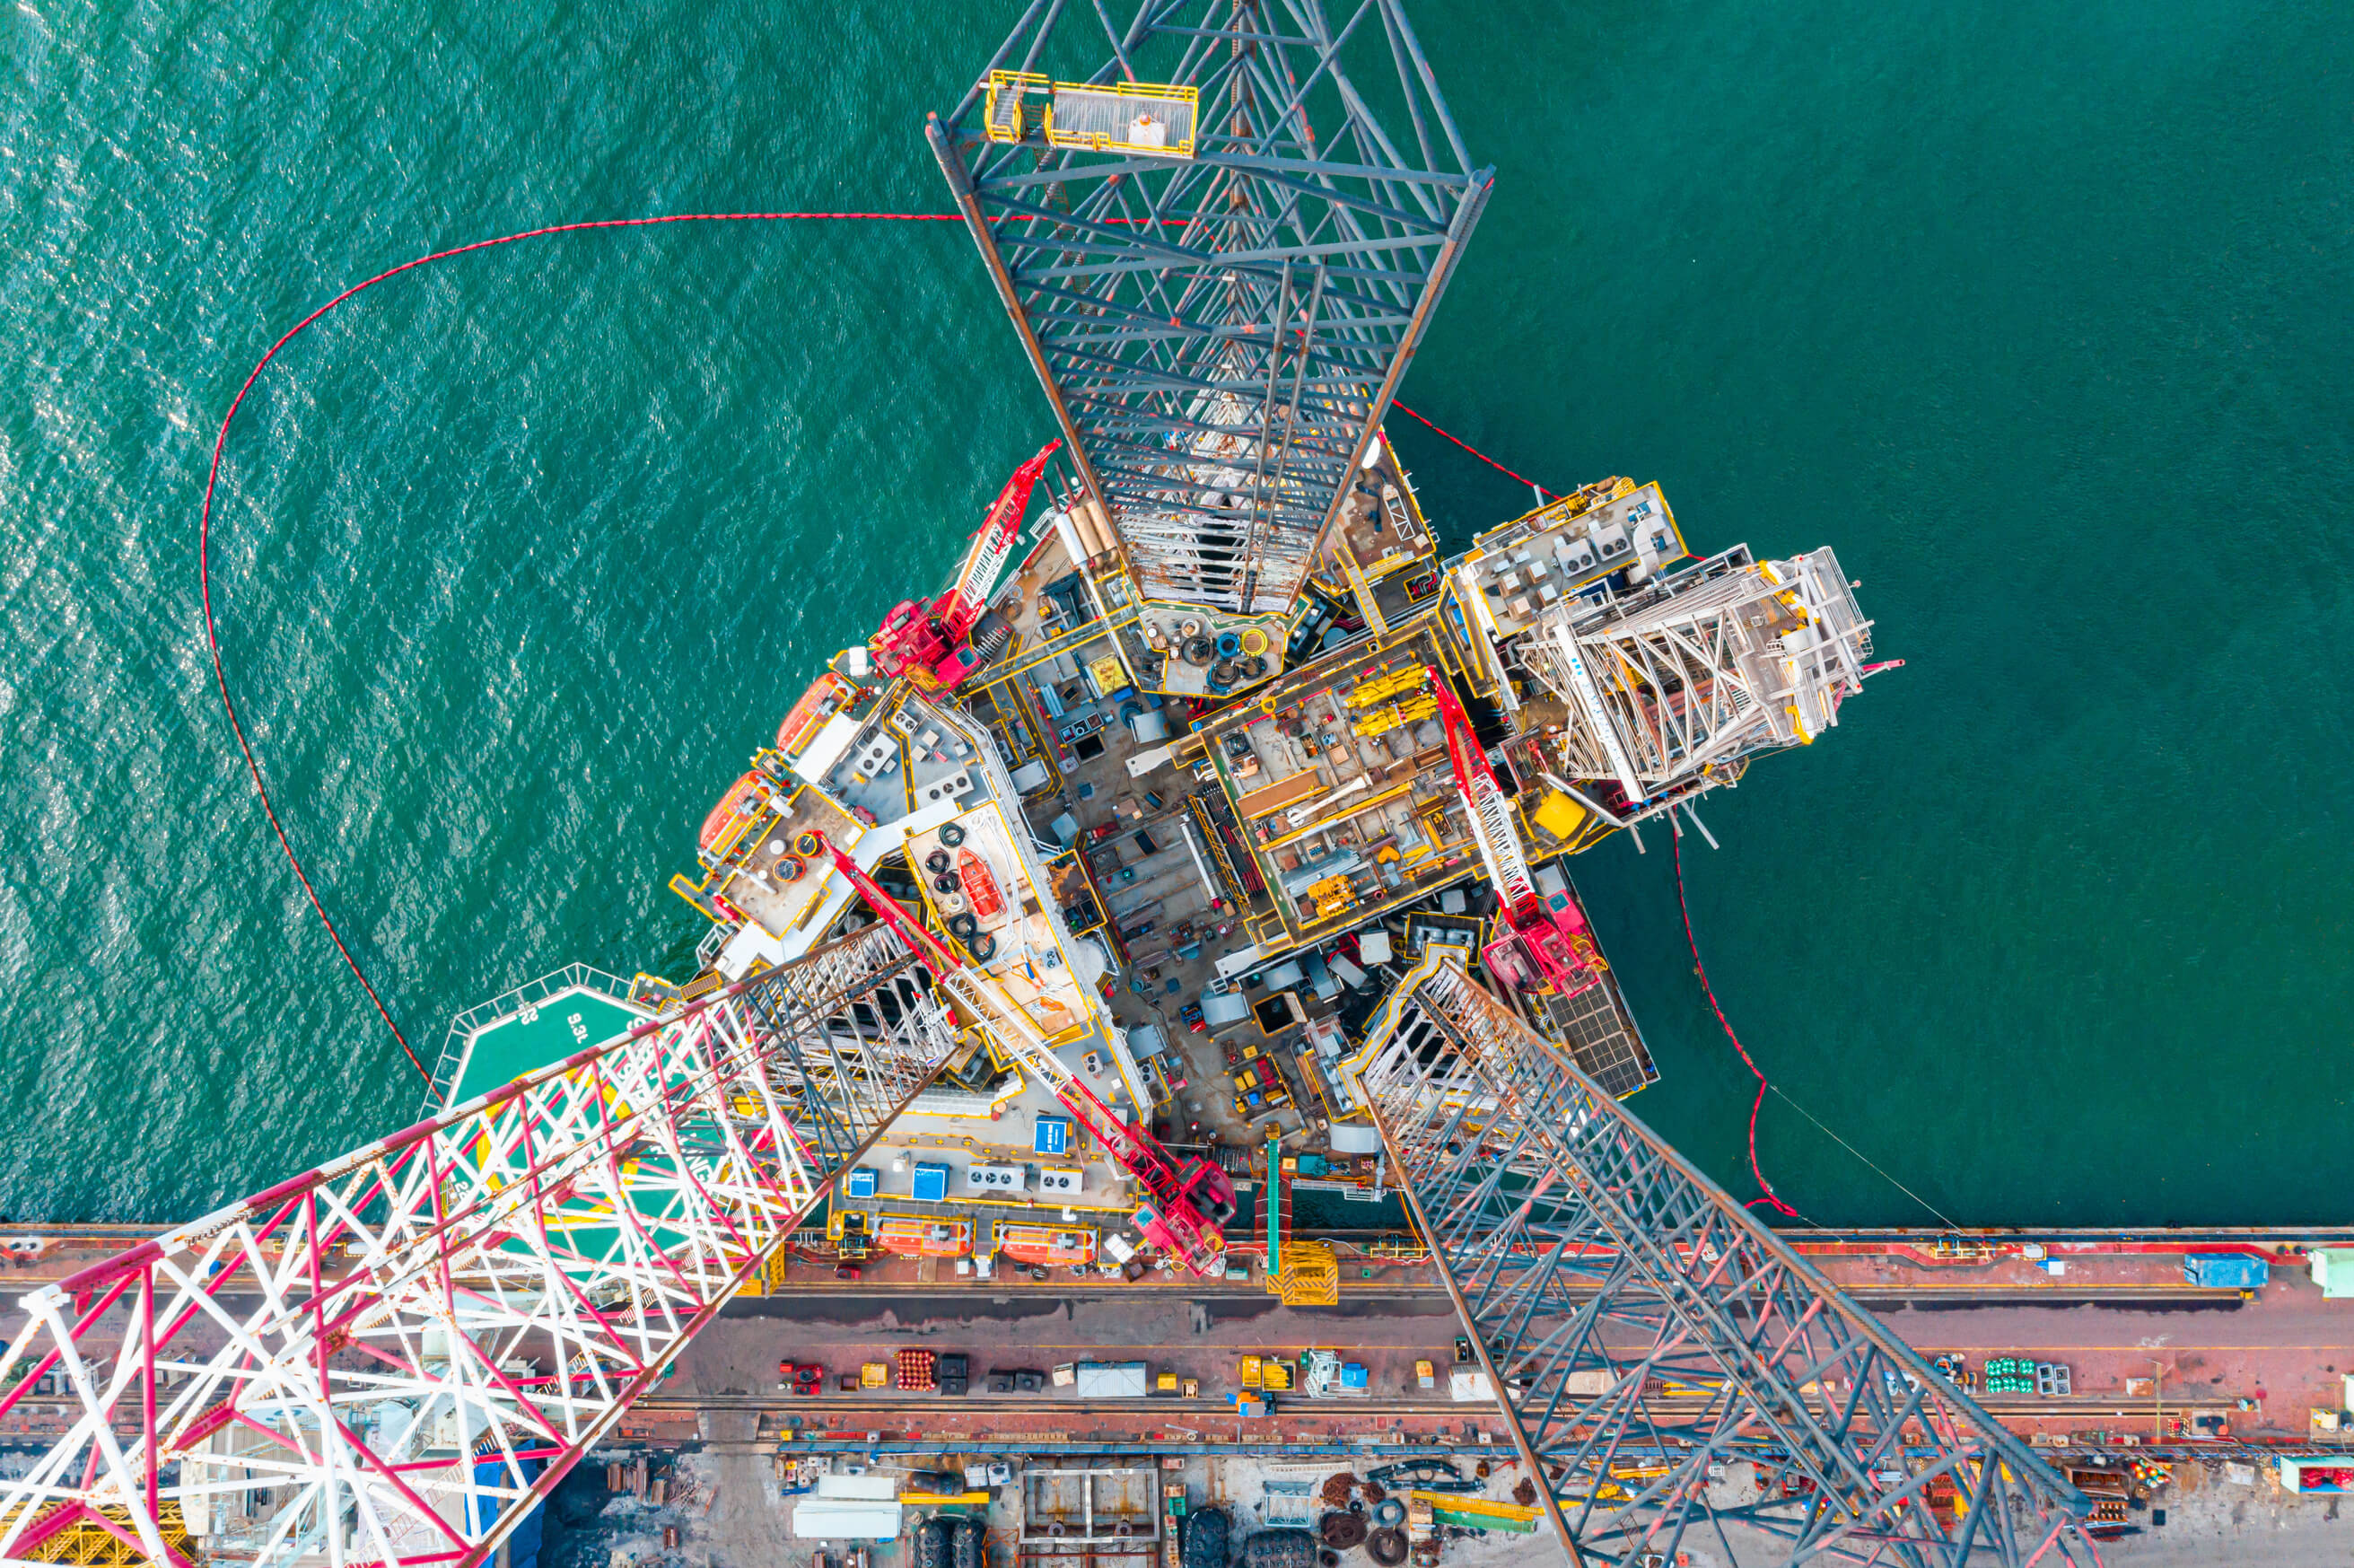 Bird's eye view of an oil rig at sea. Photo